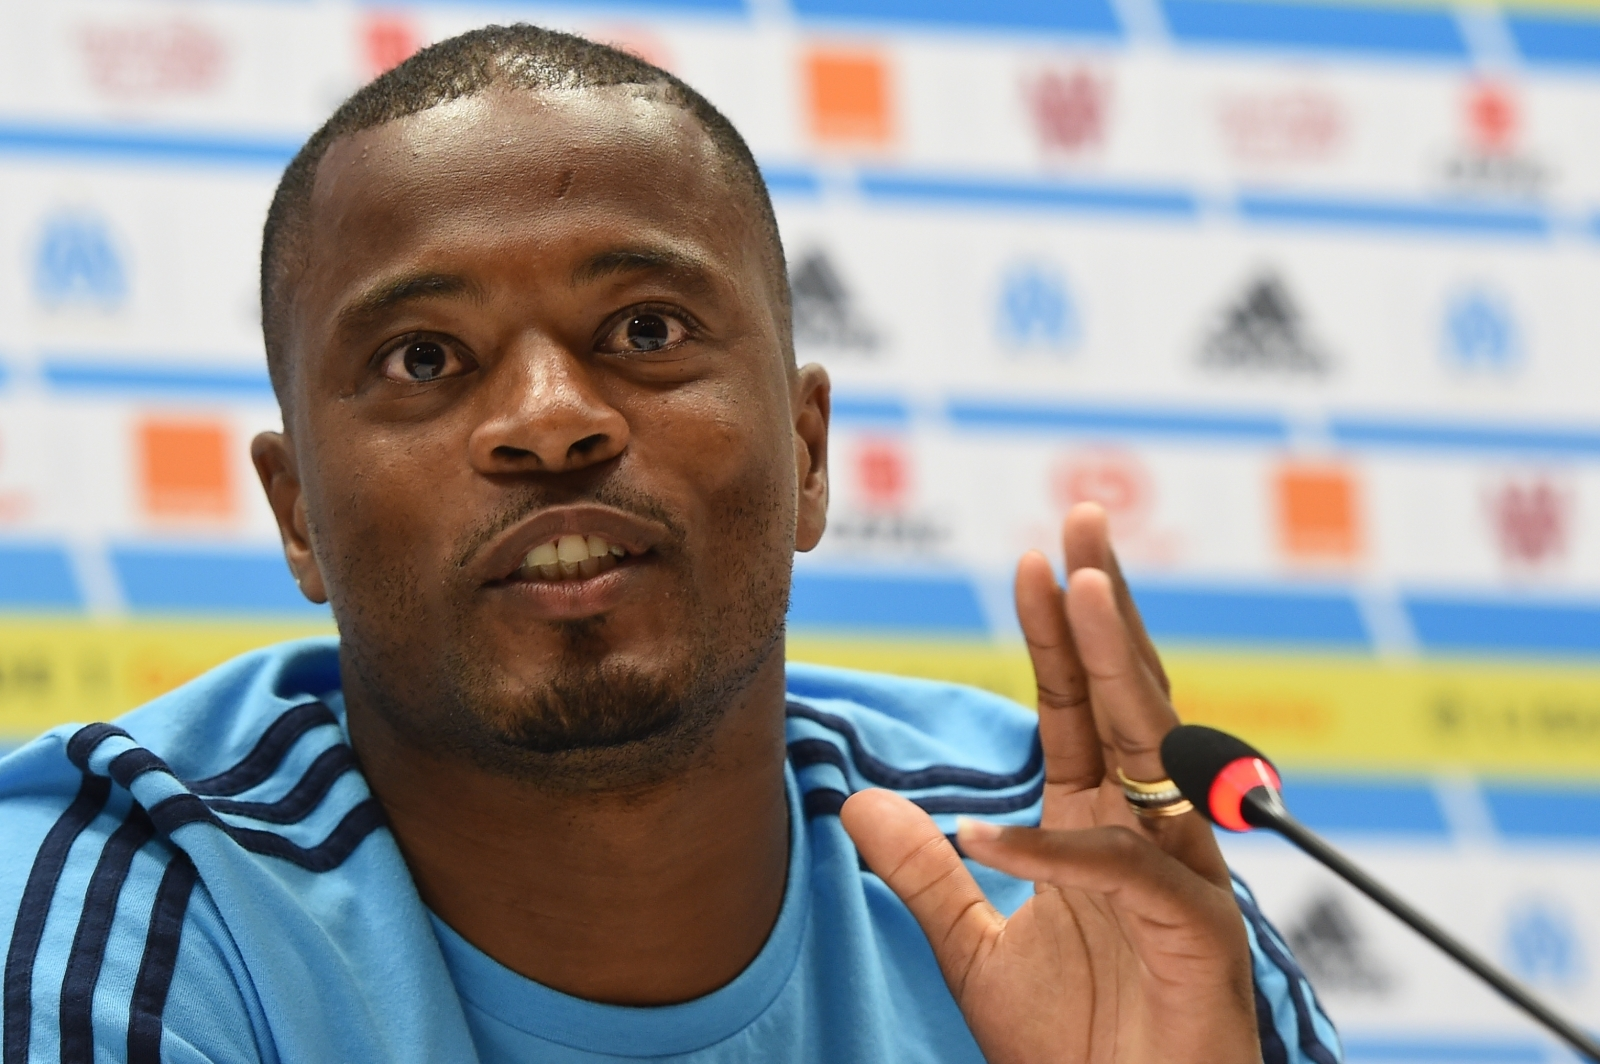 Former Manchester United star Patrice Evra joins Hammers on free transfer